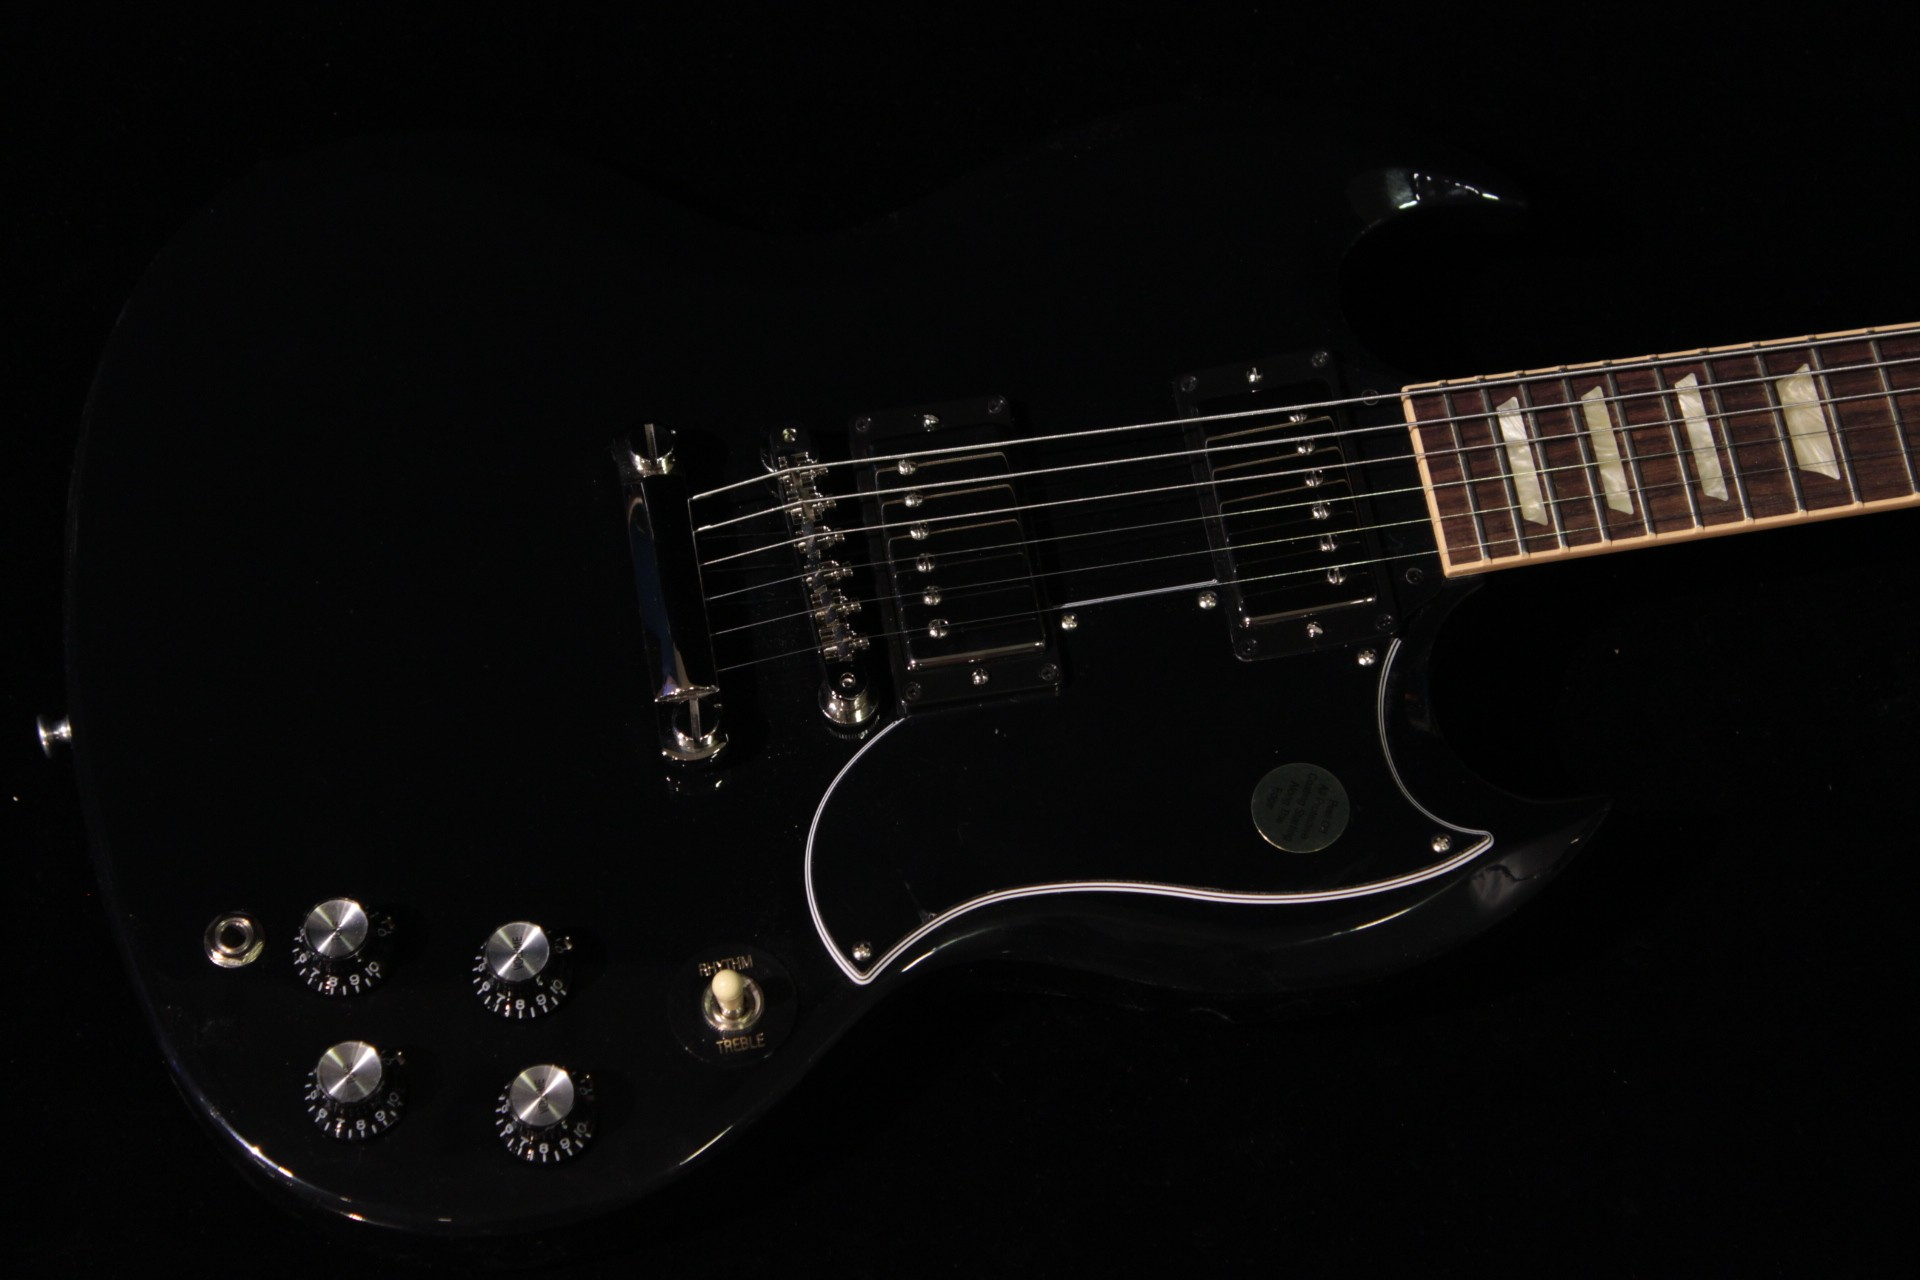 Cute gibson sg wiring diagram honda cl72 wiring diagram magnavox dvd epiphone g10 single humbucker wiring diagram dolgularcom gibson usa sg 61 reissue 2016 limited 884 eb cheapraybanclubmaster Gallery